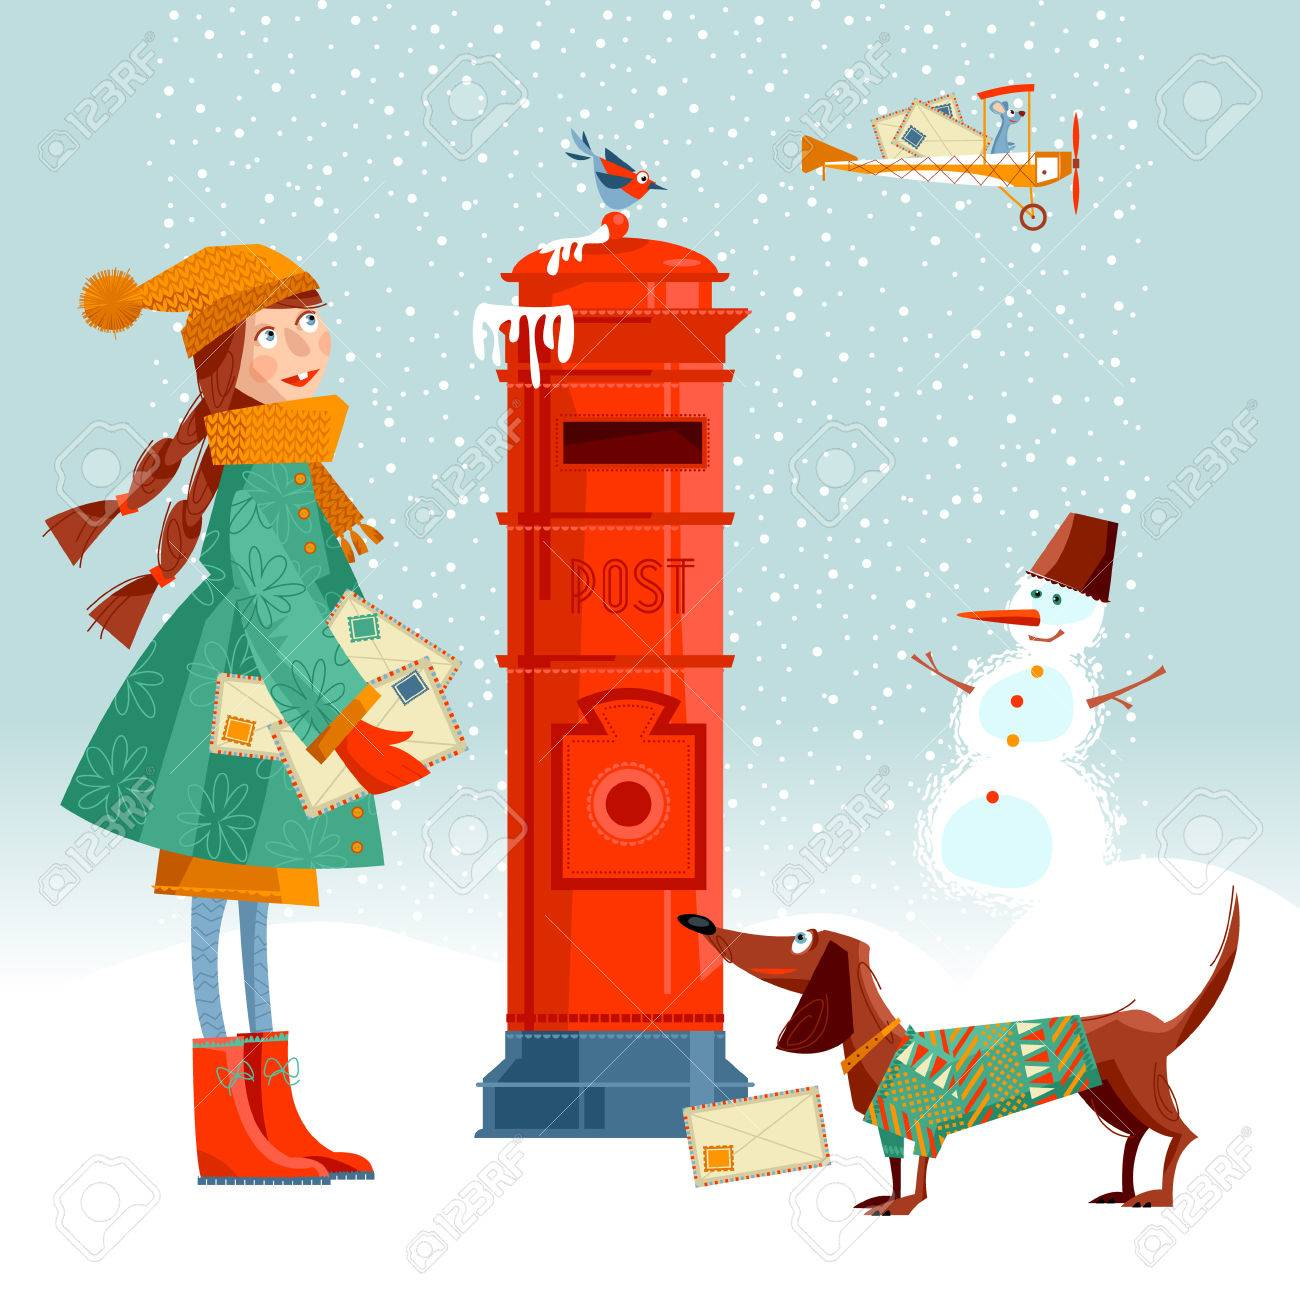 Little girl and dachshund at the post box sending letters little girl and dachshund at the post box sending letters to santa vintage christmas kristyandbryce Image collections